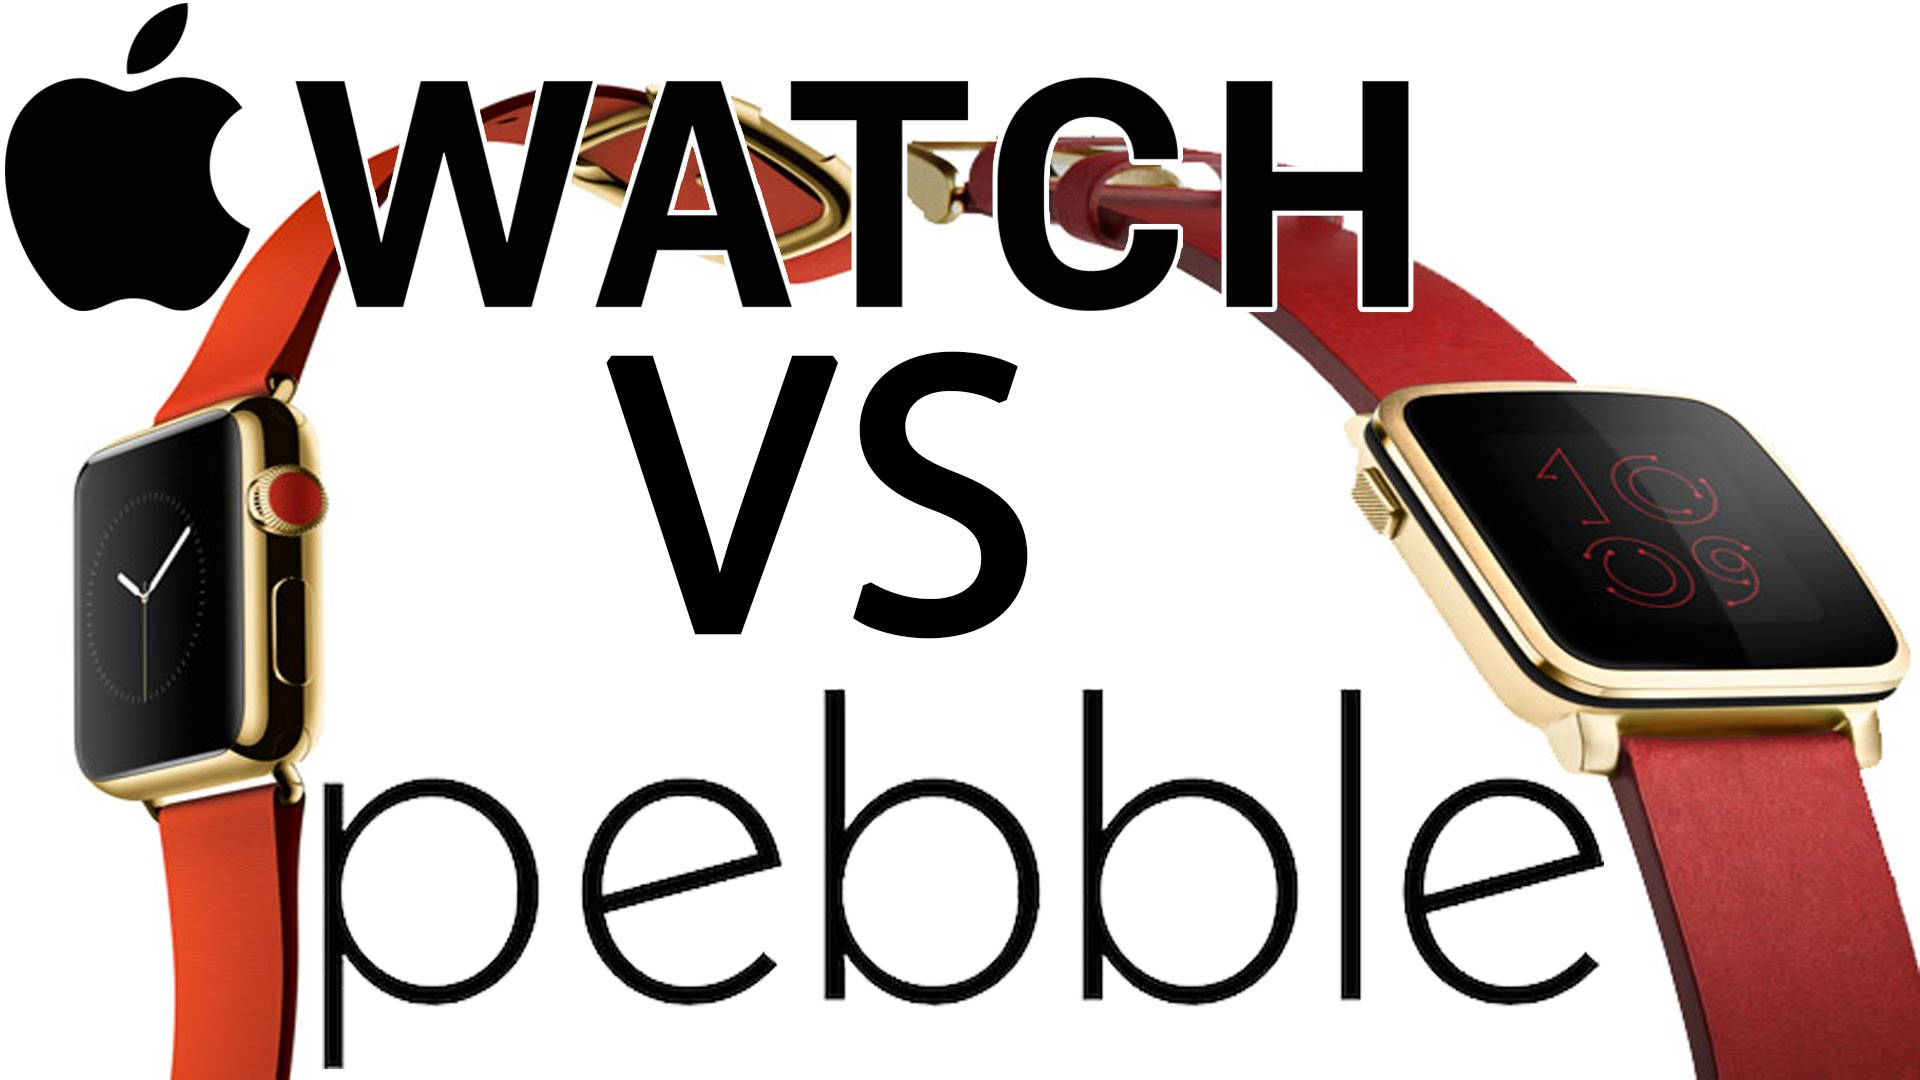 Pebble clipart one Get? YouTube or  should